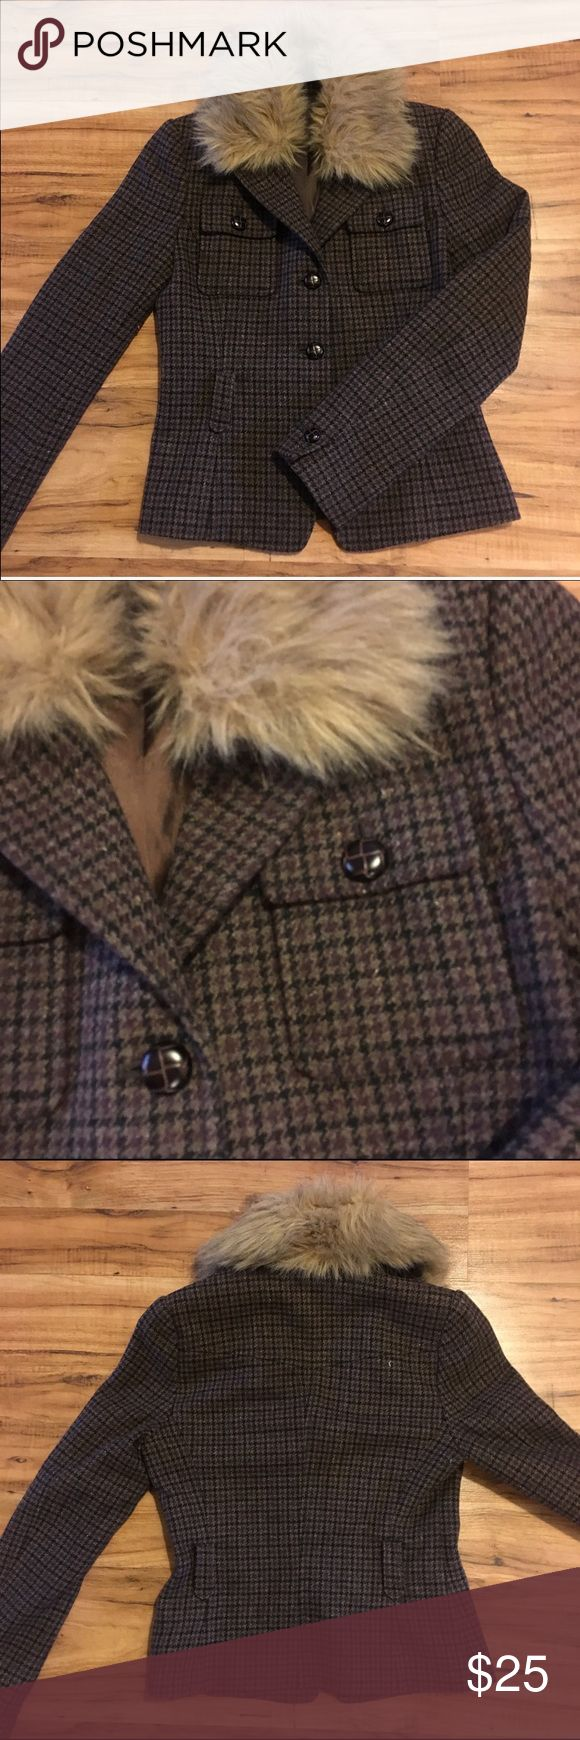 Uniqlo Plaid Wool Jacket Adorable wool fitted jacket. Muted black, gray and burgundy plaid. Button up, with optional self tie at waist. Collar has removable faux fur accent. Really cute Over pants or skirts! Great condition, no flaws. Uniqlo Jackets & Coats Blazers